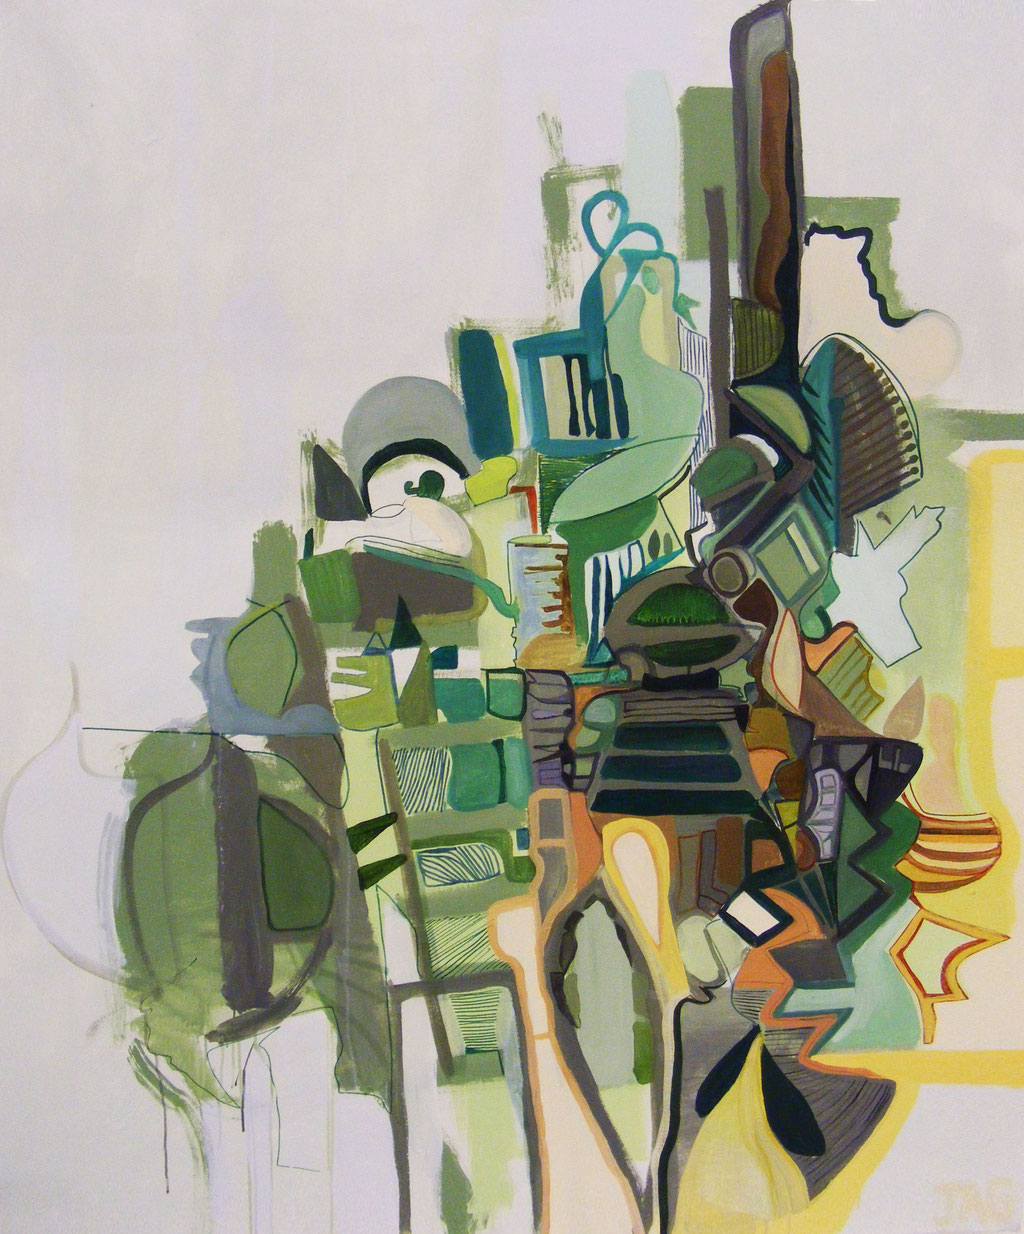 'Emerald Mountain' oil, acrylic and emulsion on canvas, 2009 - SOLD